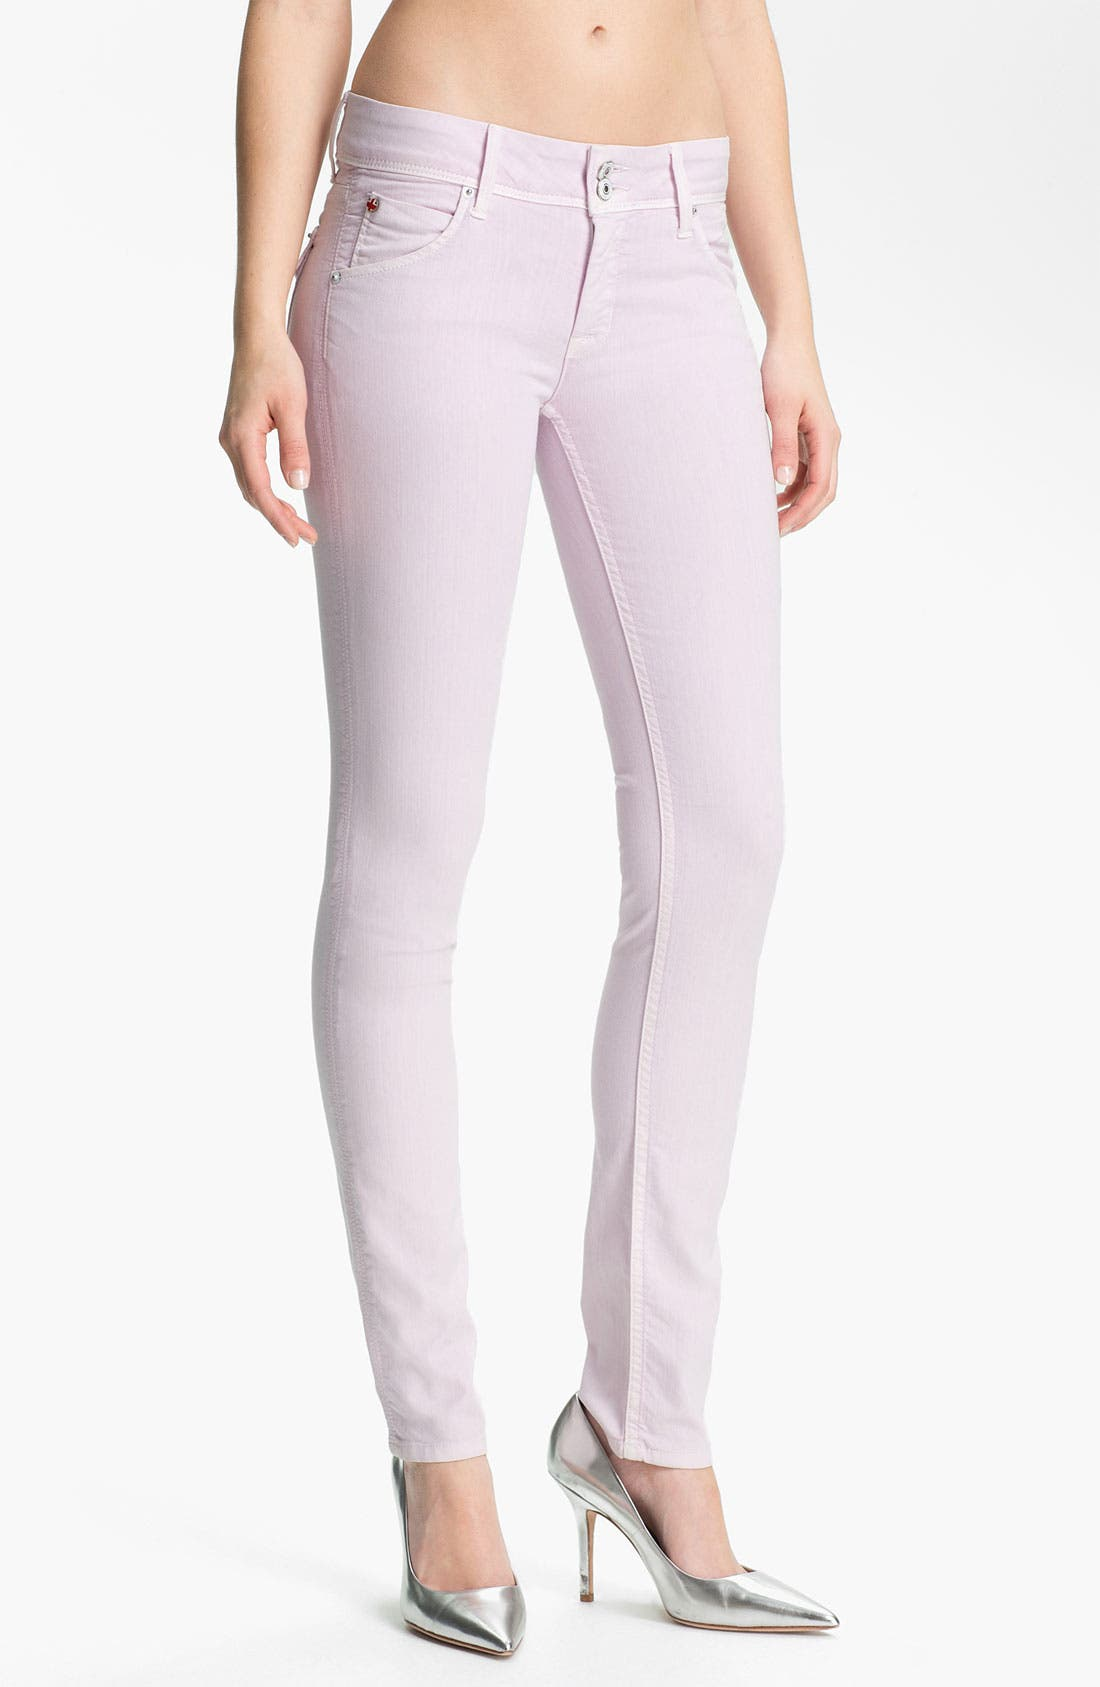 Alternate Image 1 Selected - Hudson Jeans Skinny Stretch Jeans (Lilac)